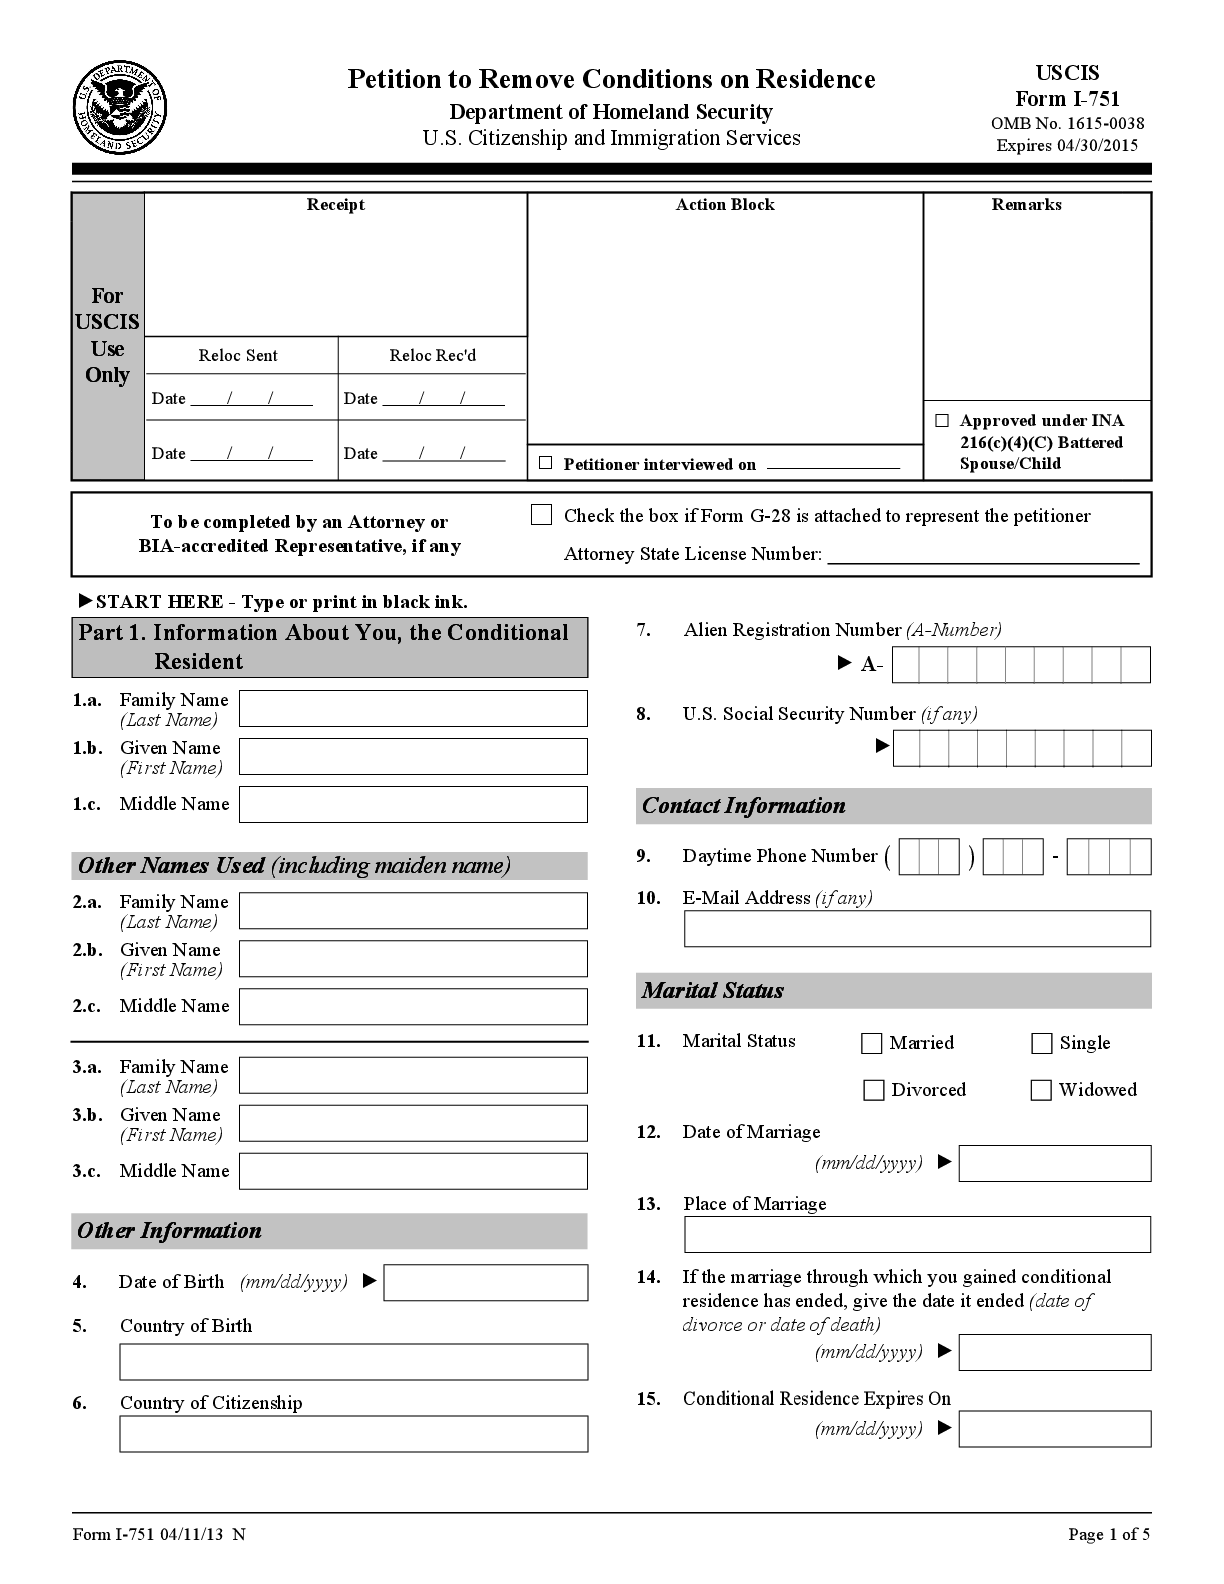 Get The FREE I 751 Sample 2016 Form Online